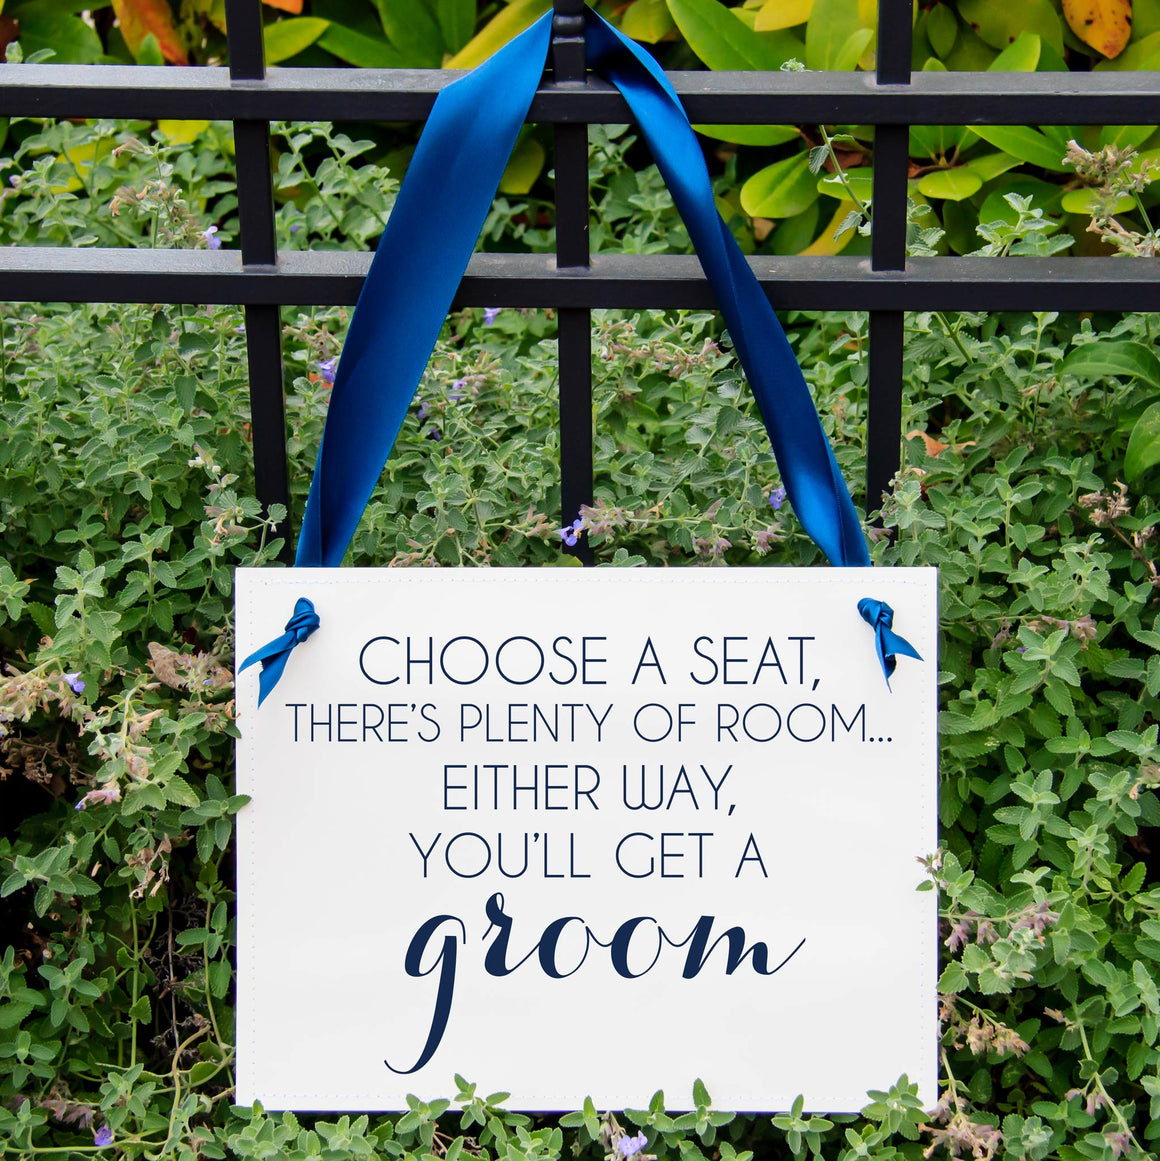 Choose A Seat, There's Plenty of Room... Either Way You'll Get A Groom